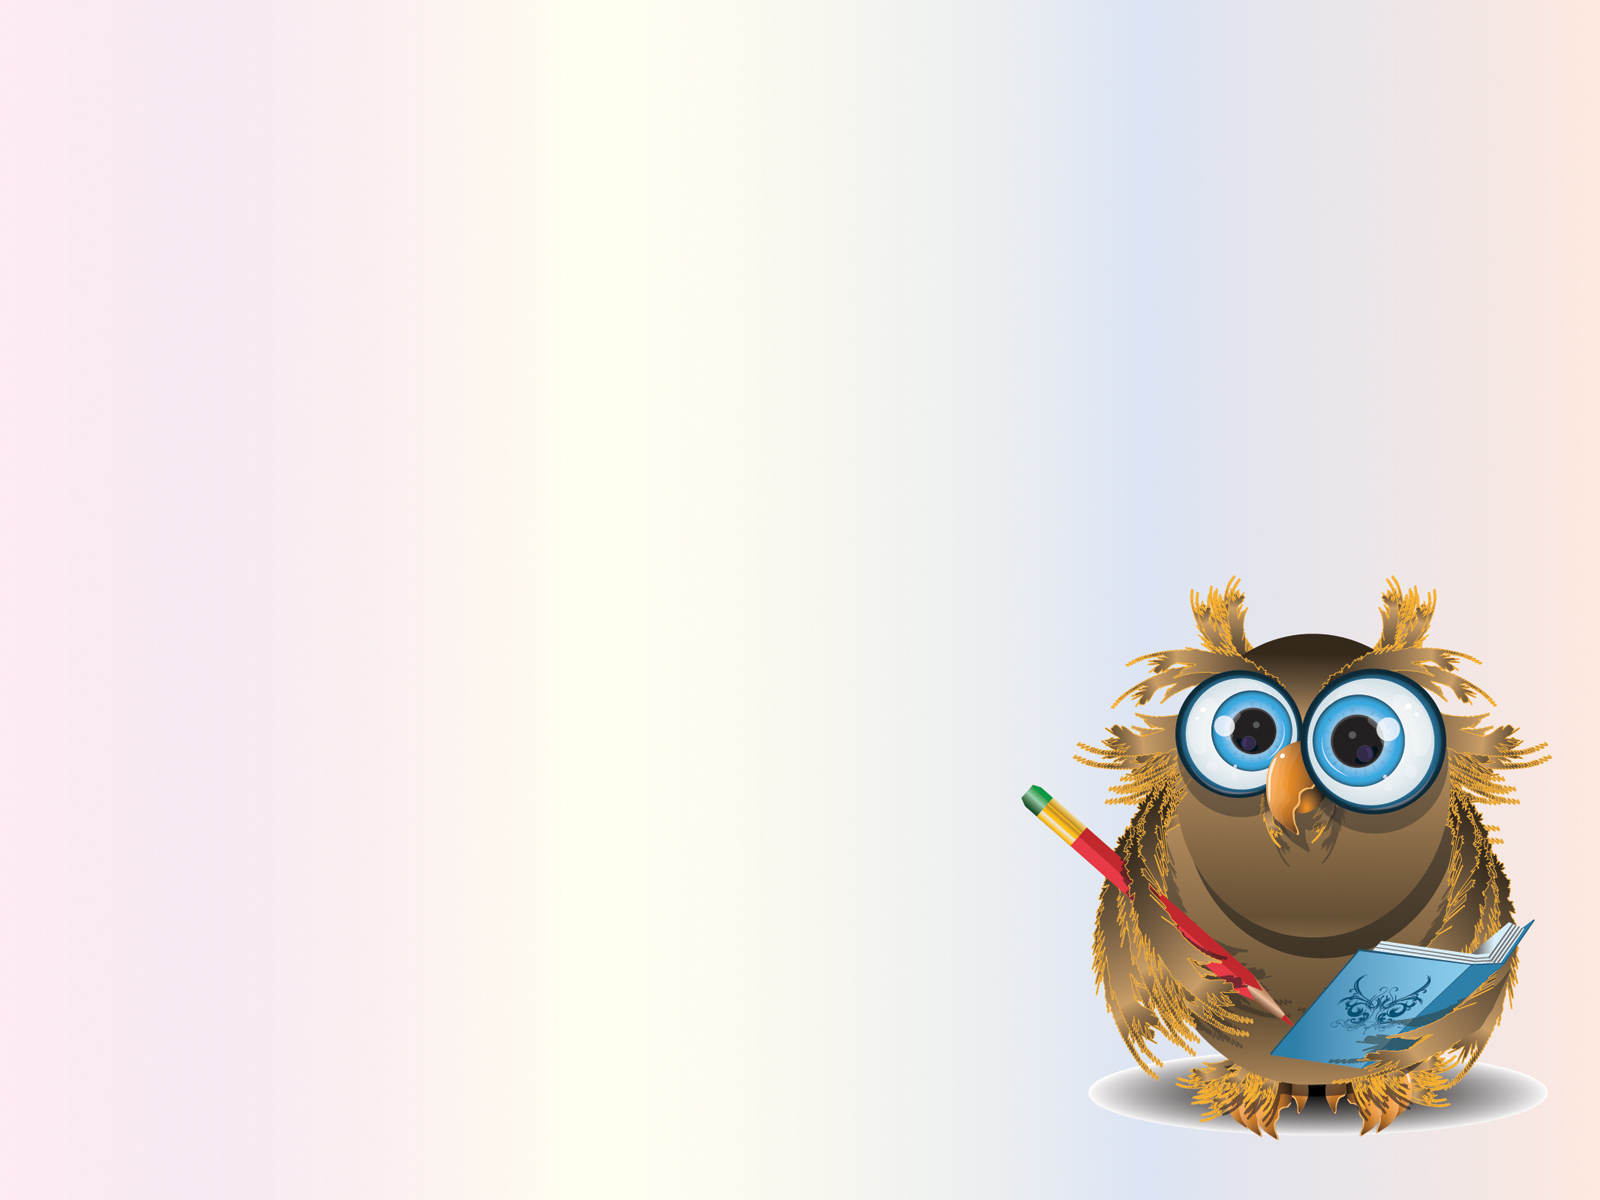 Sweet Owl Teacher Backgrounds Animals Educational